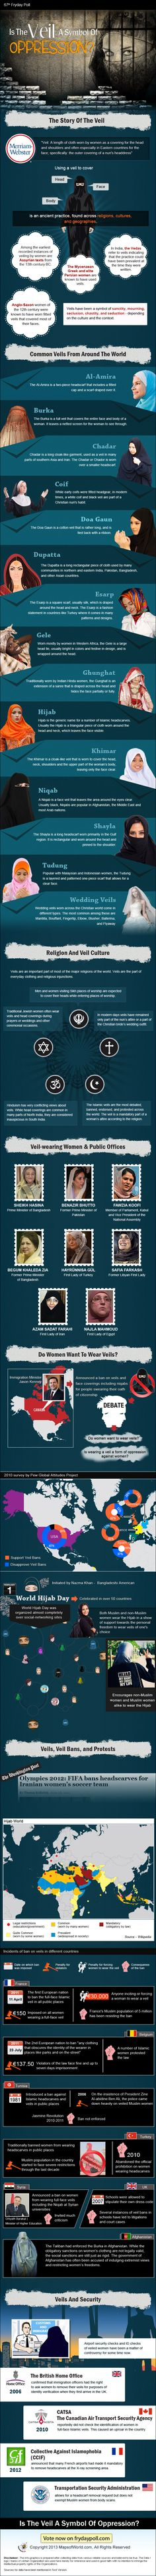 Is The Veil A Symbol Of Oppression? Facts and Infographic - 67th Fryday Poll - Facts & Infographic